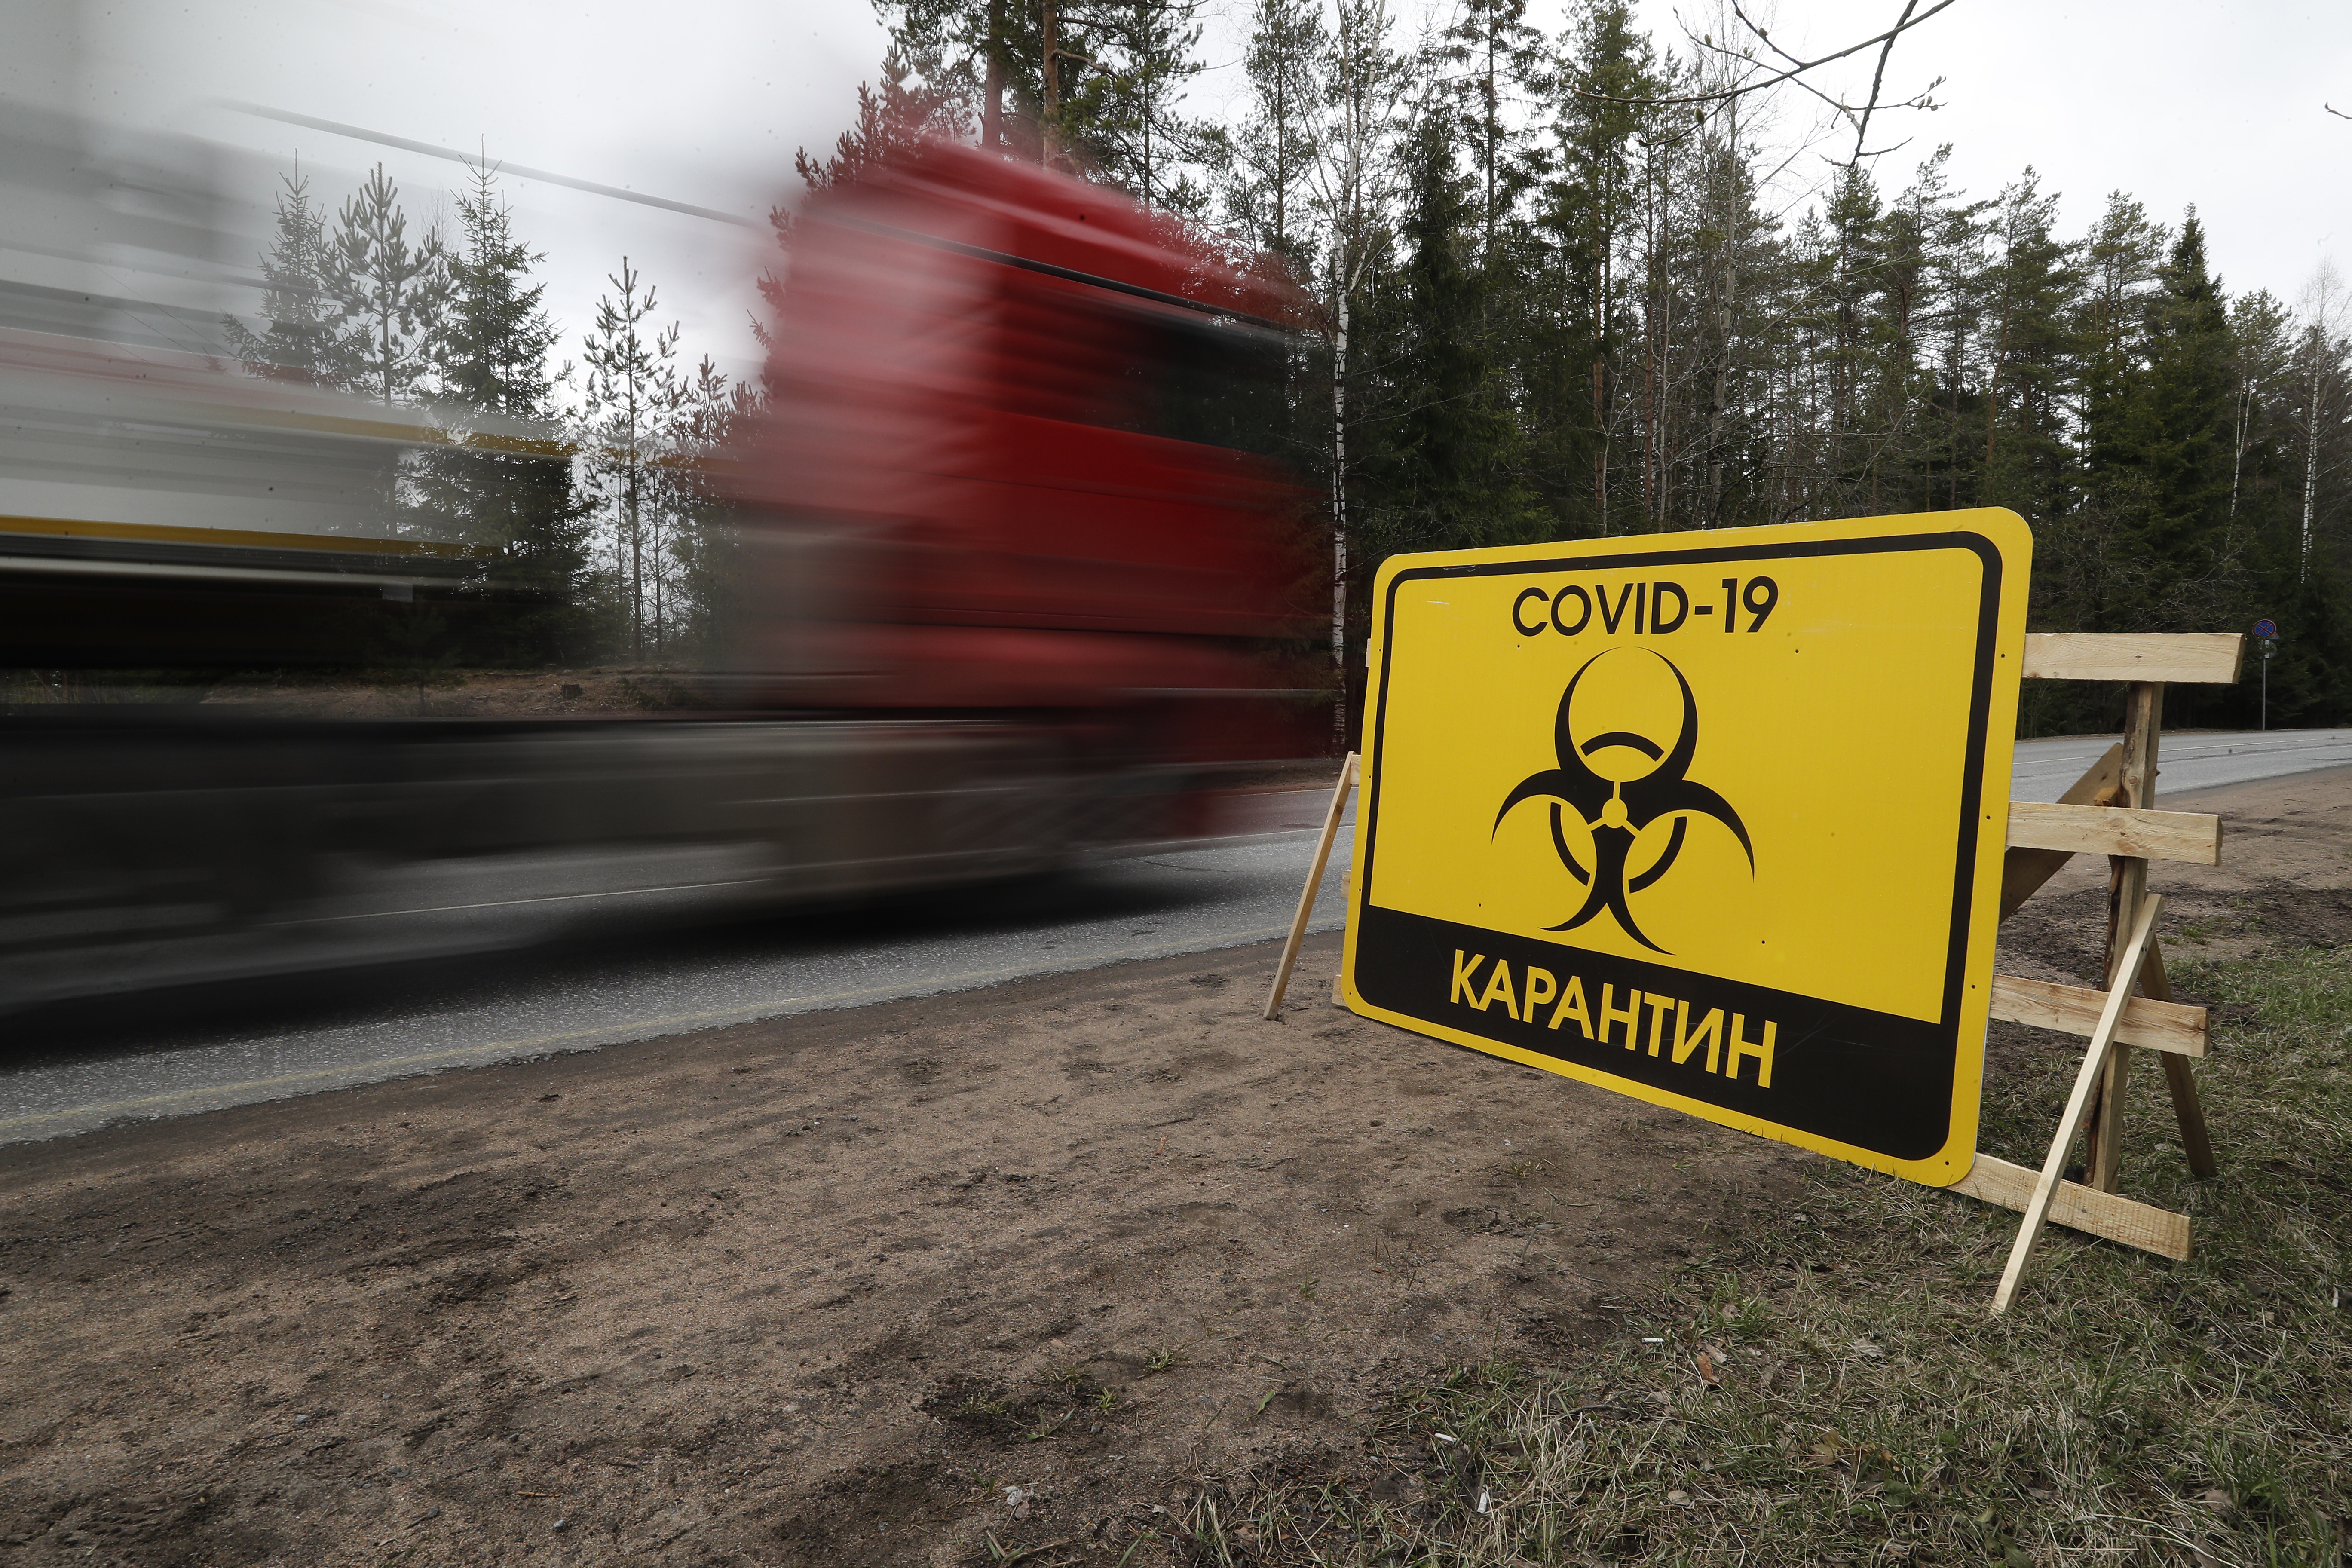 Russia's coronavirus cases hit new high, Moscow warns of clampdown